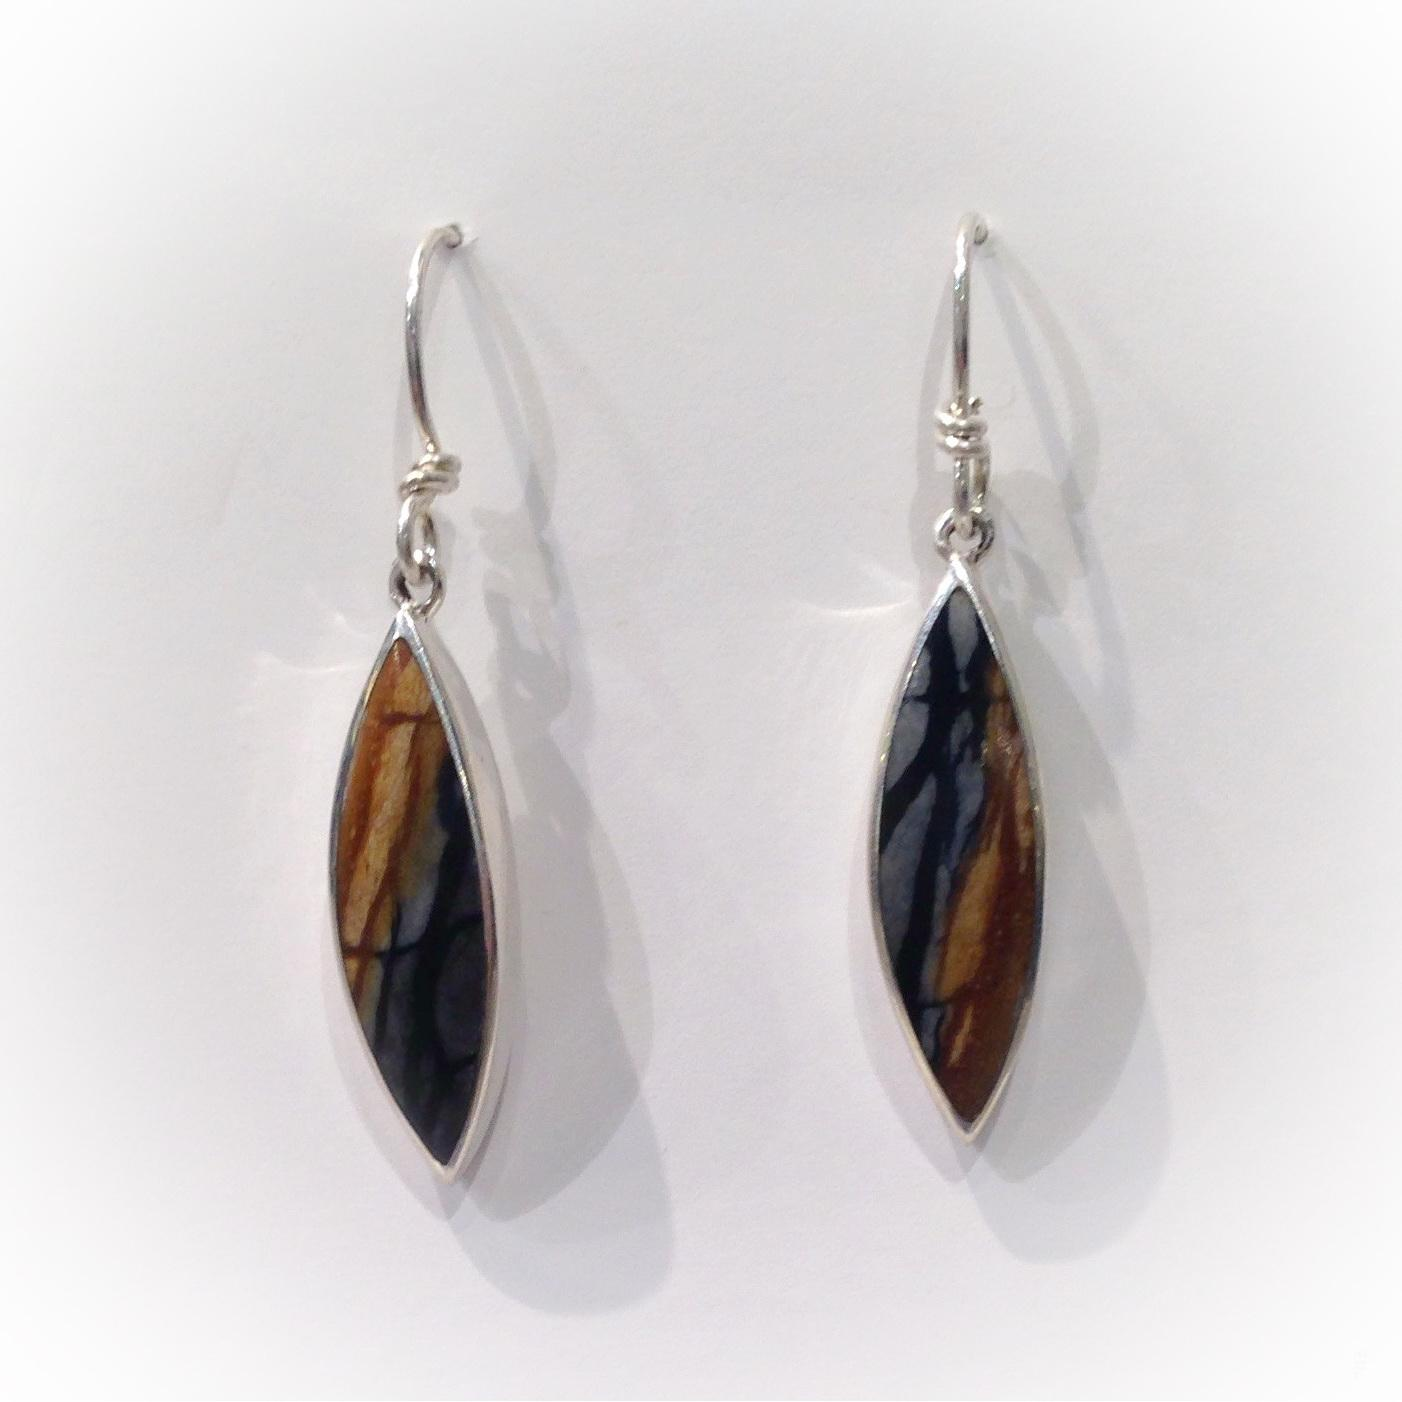 Handmade Picasso Jasper Earrings by jeweller Brenda Roy at The Avenue Gallery, a contemporary fine art gallery in Victoria, British Columbia, Canada.